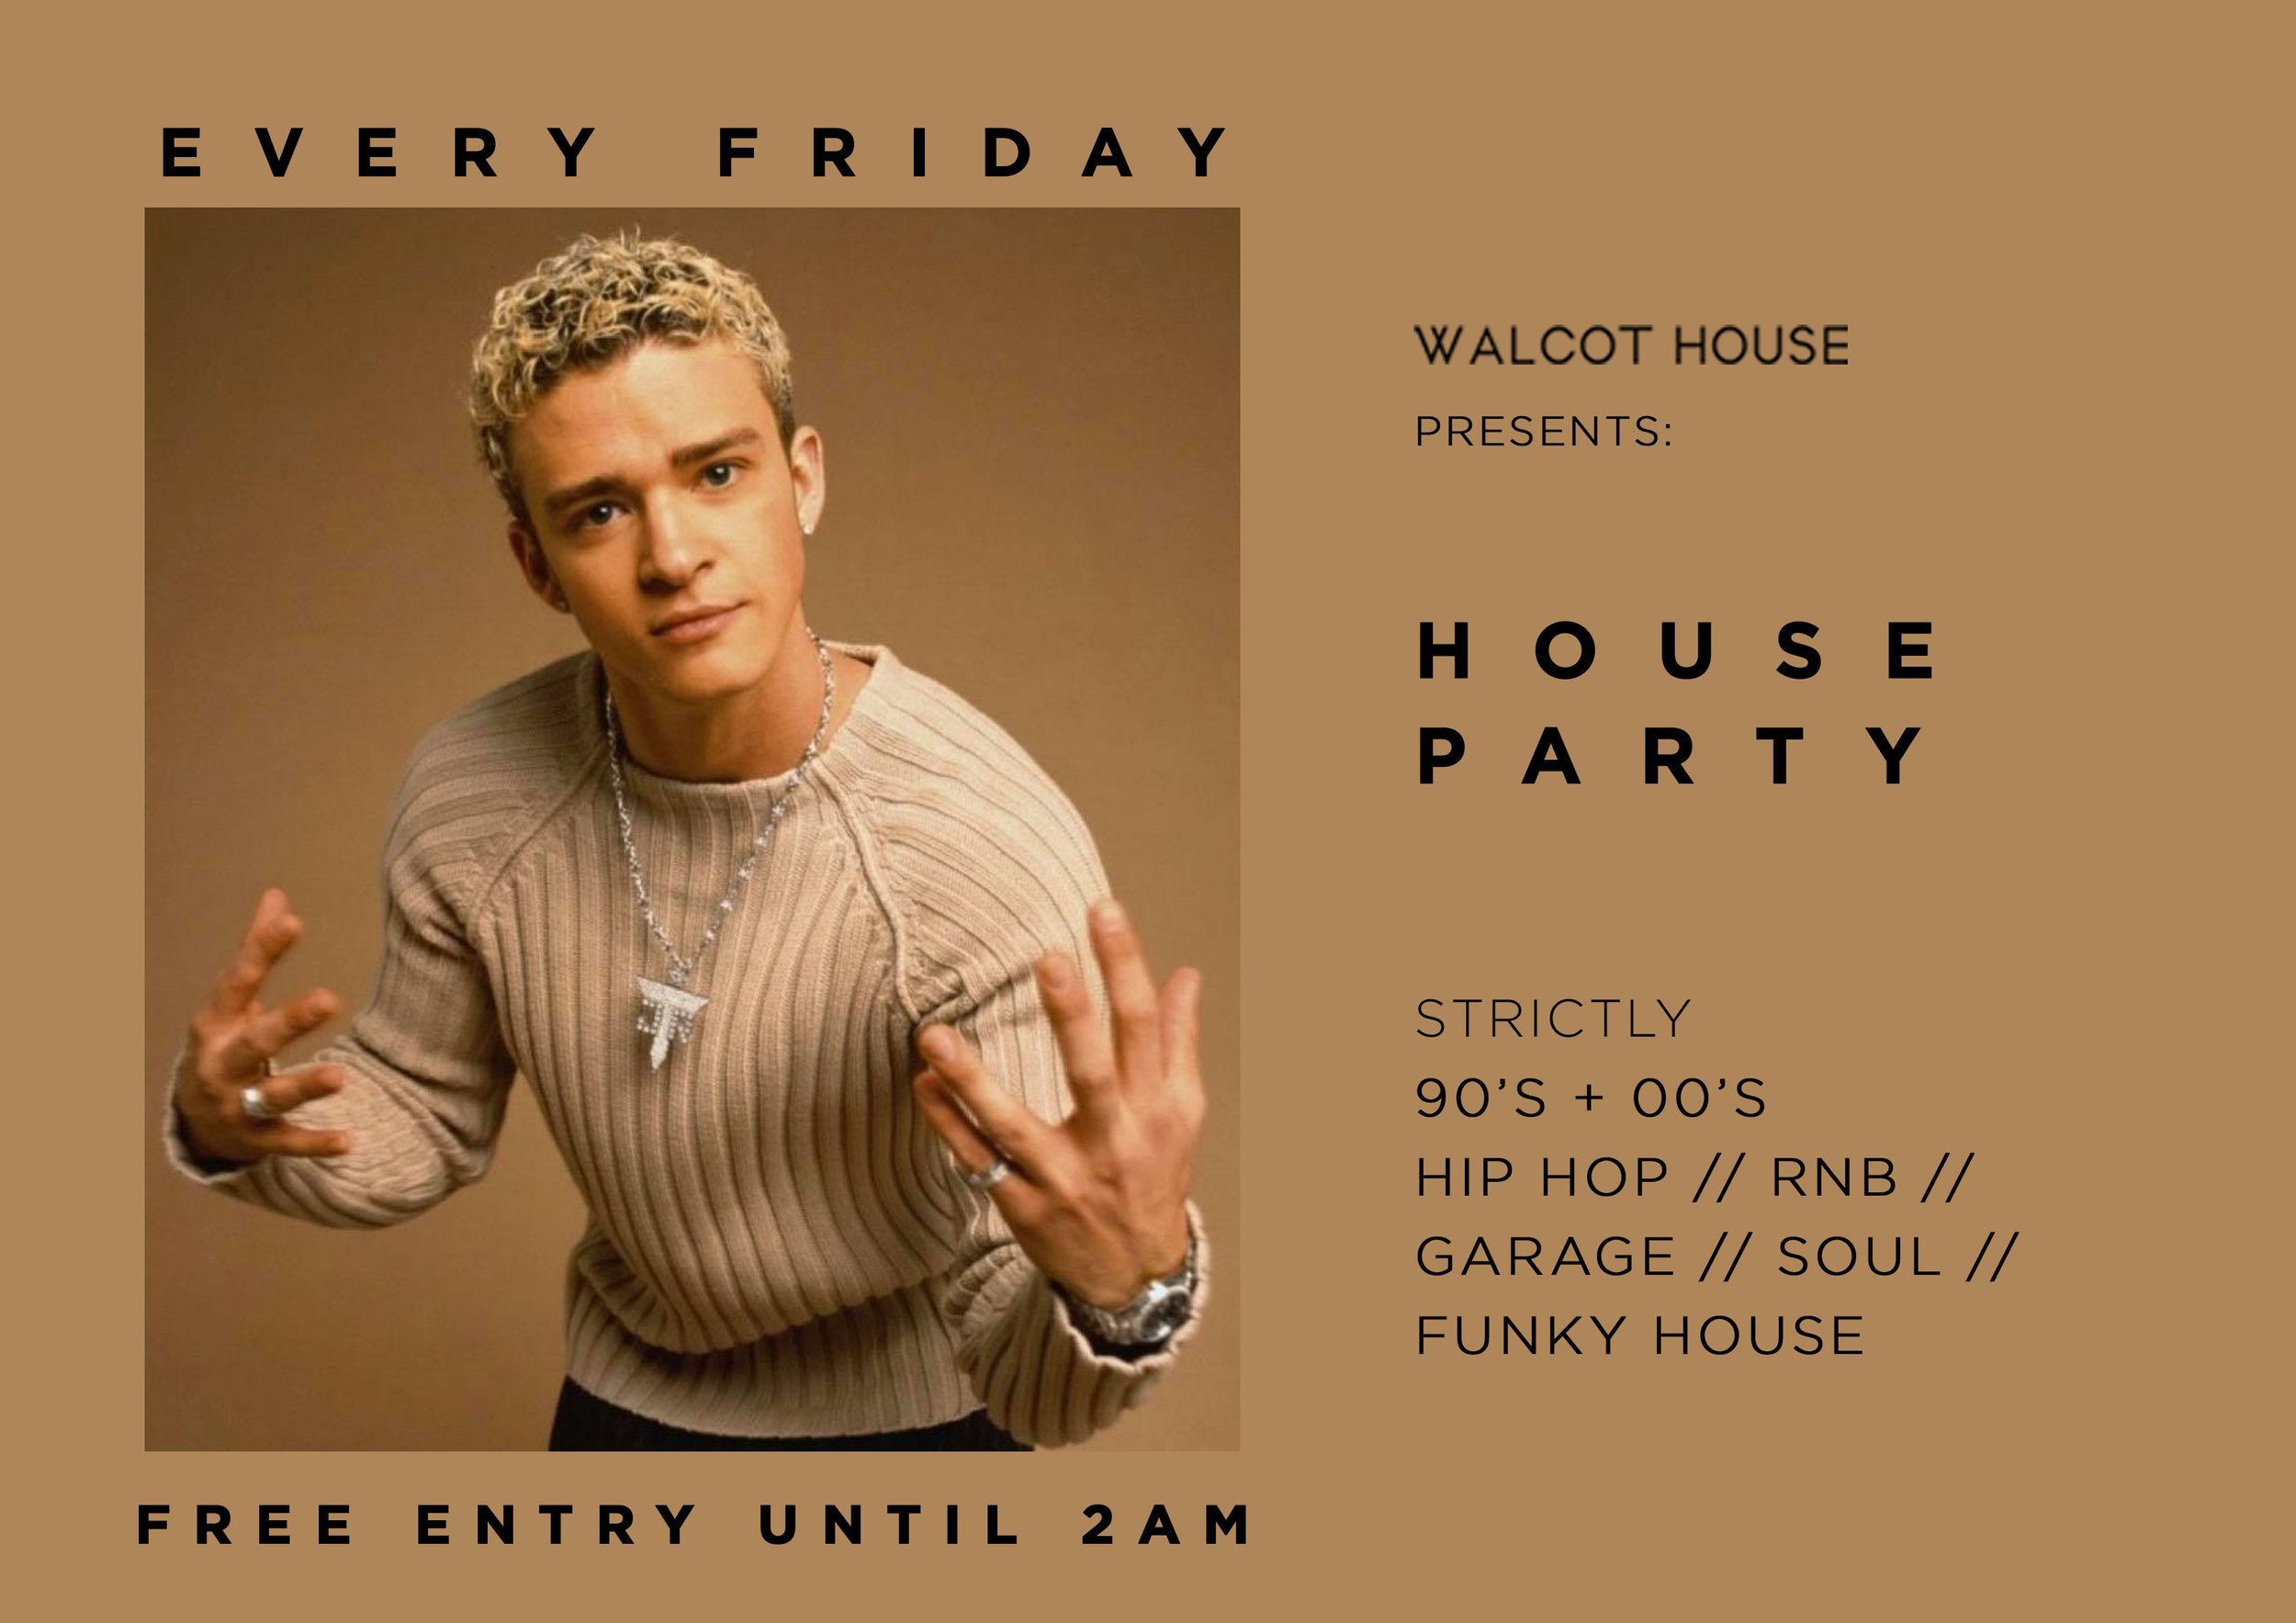 HOUSE PARTY FLYER JT.jpg